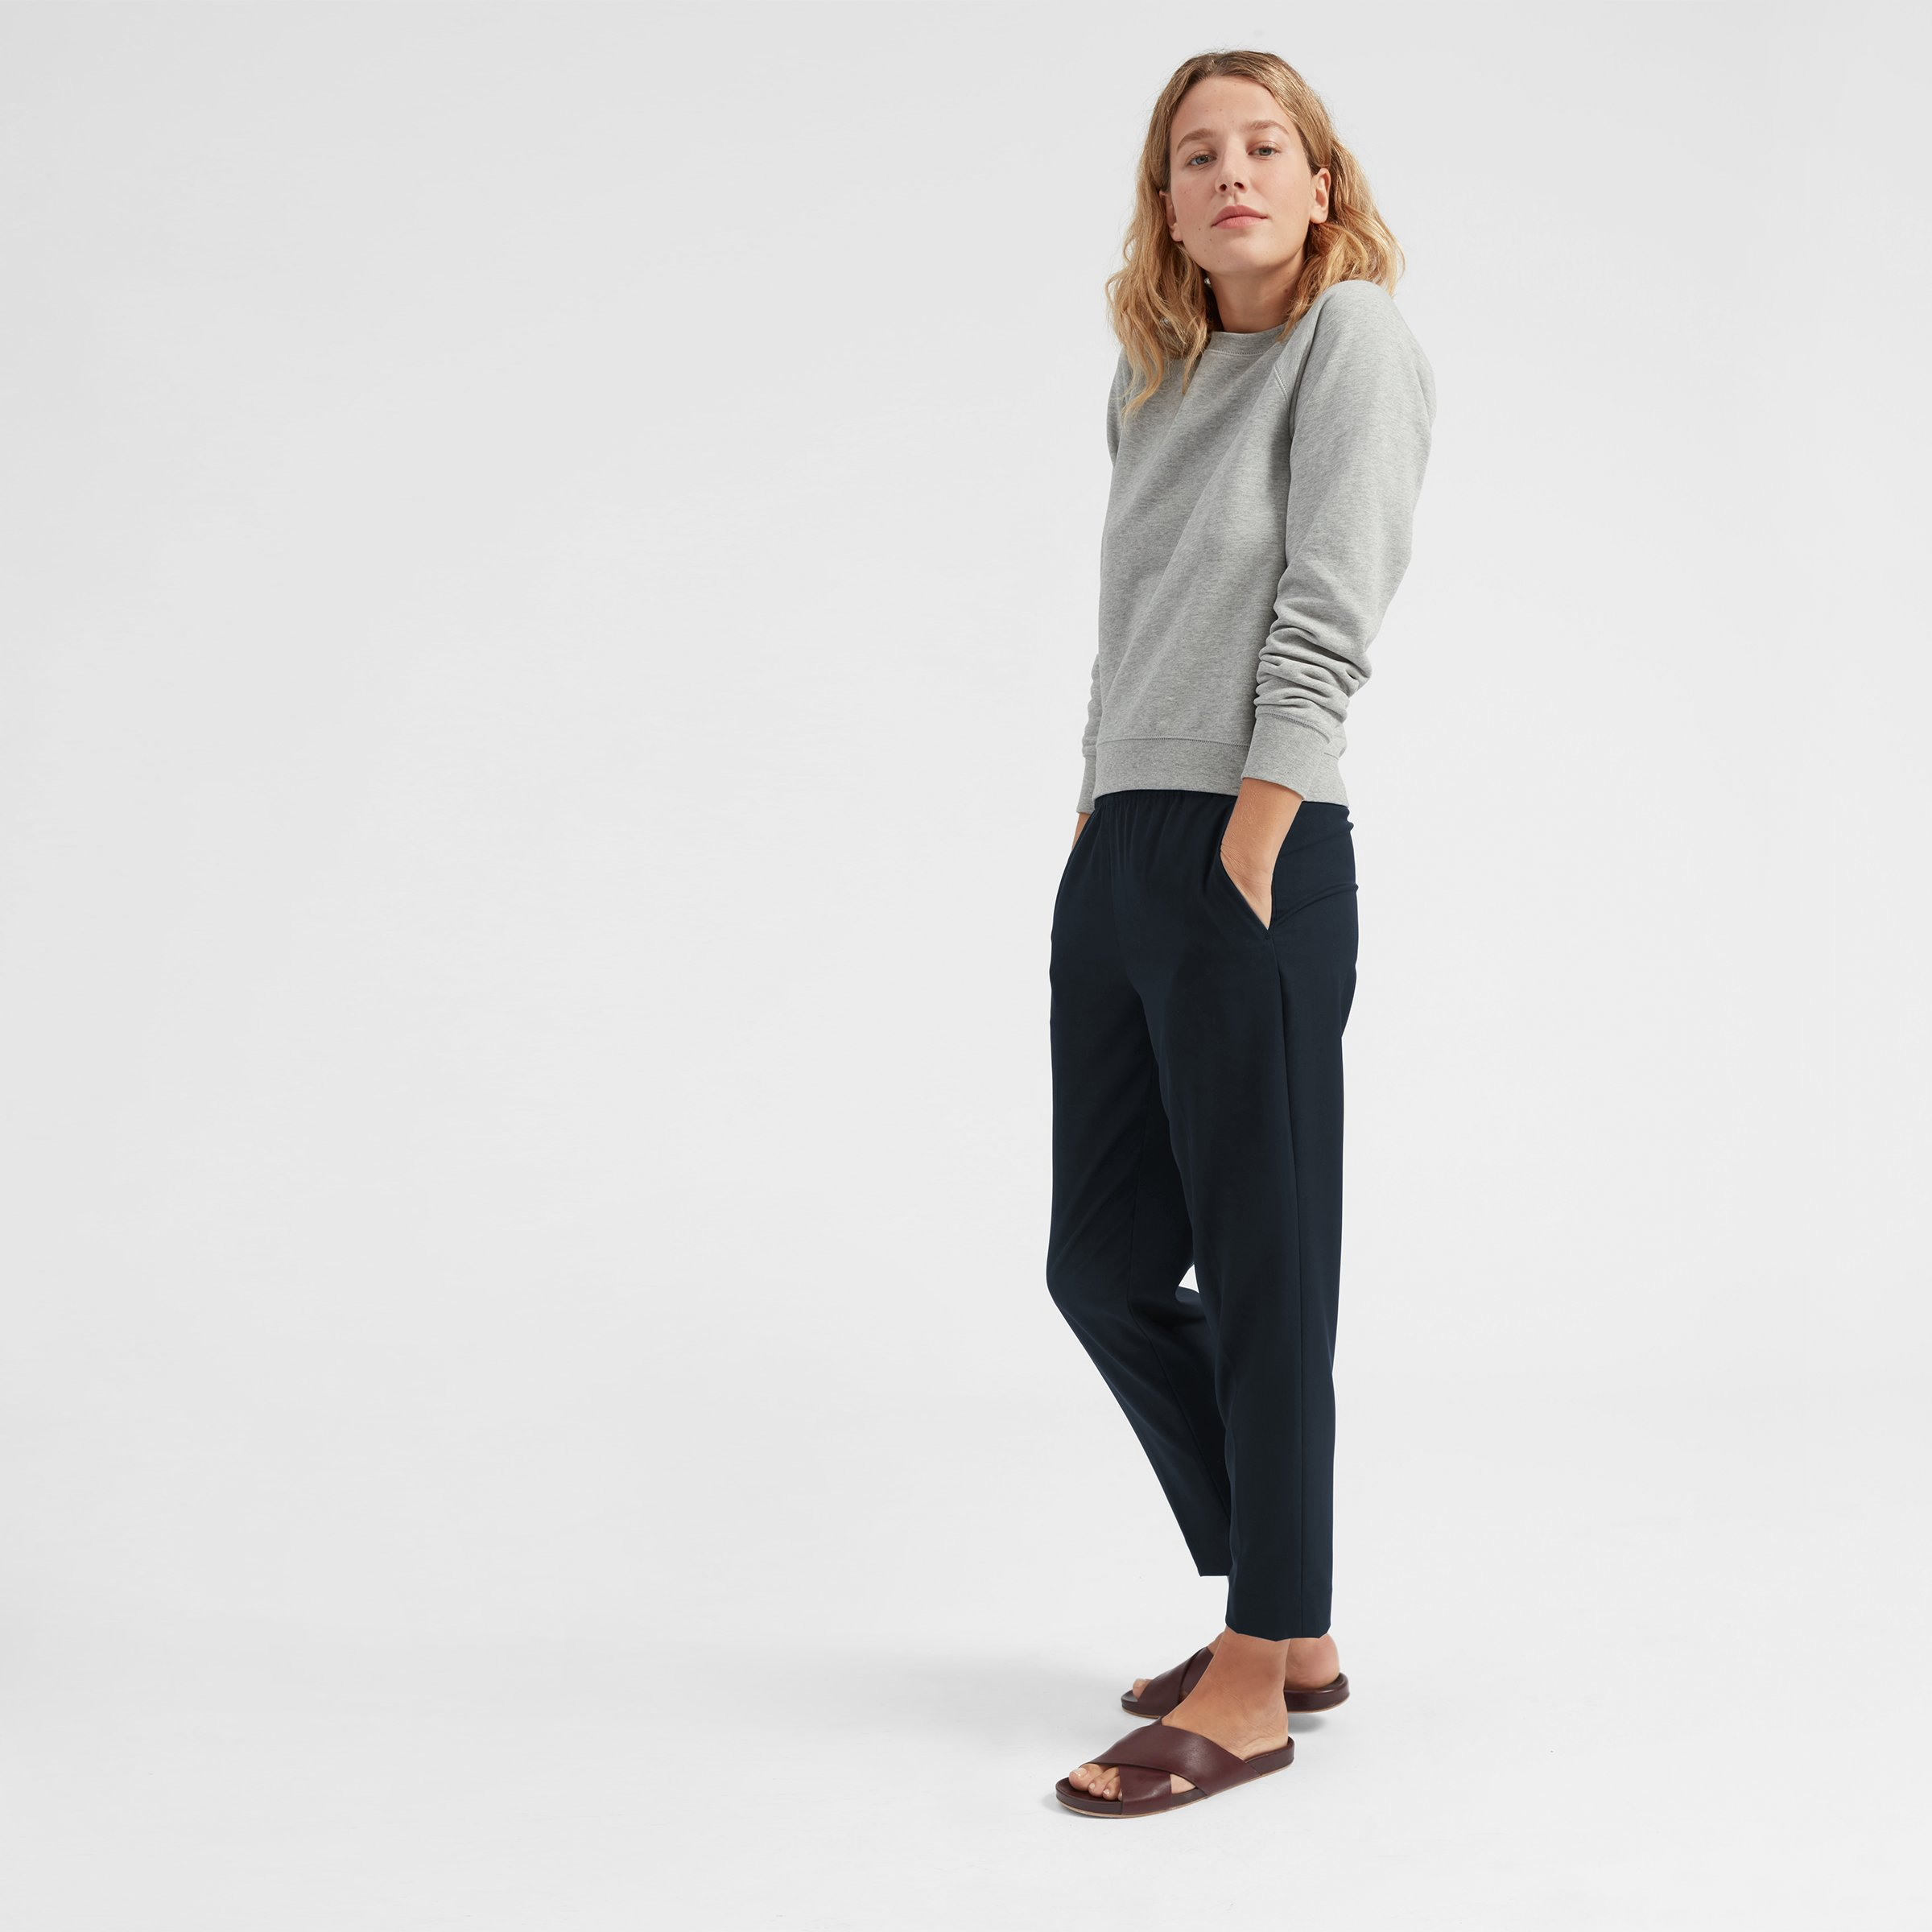 Everlane Travel Pants